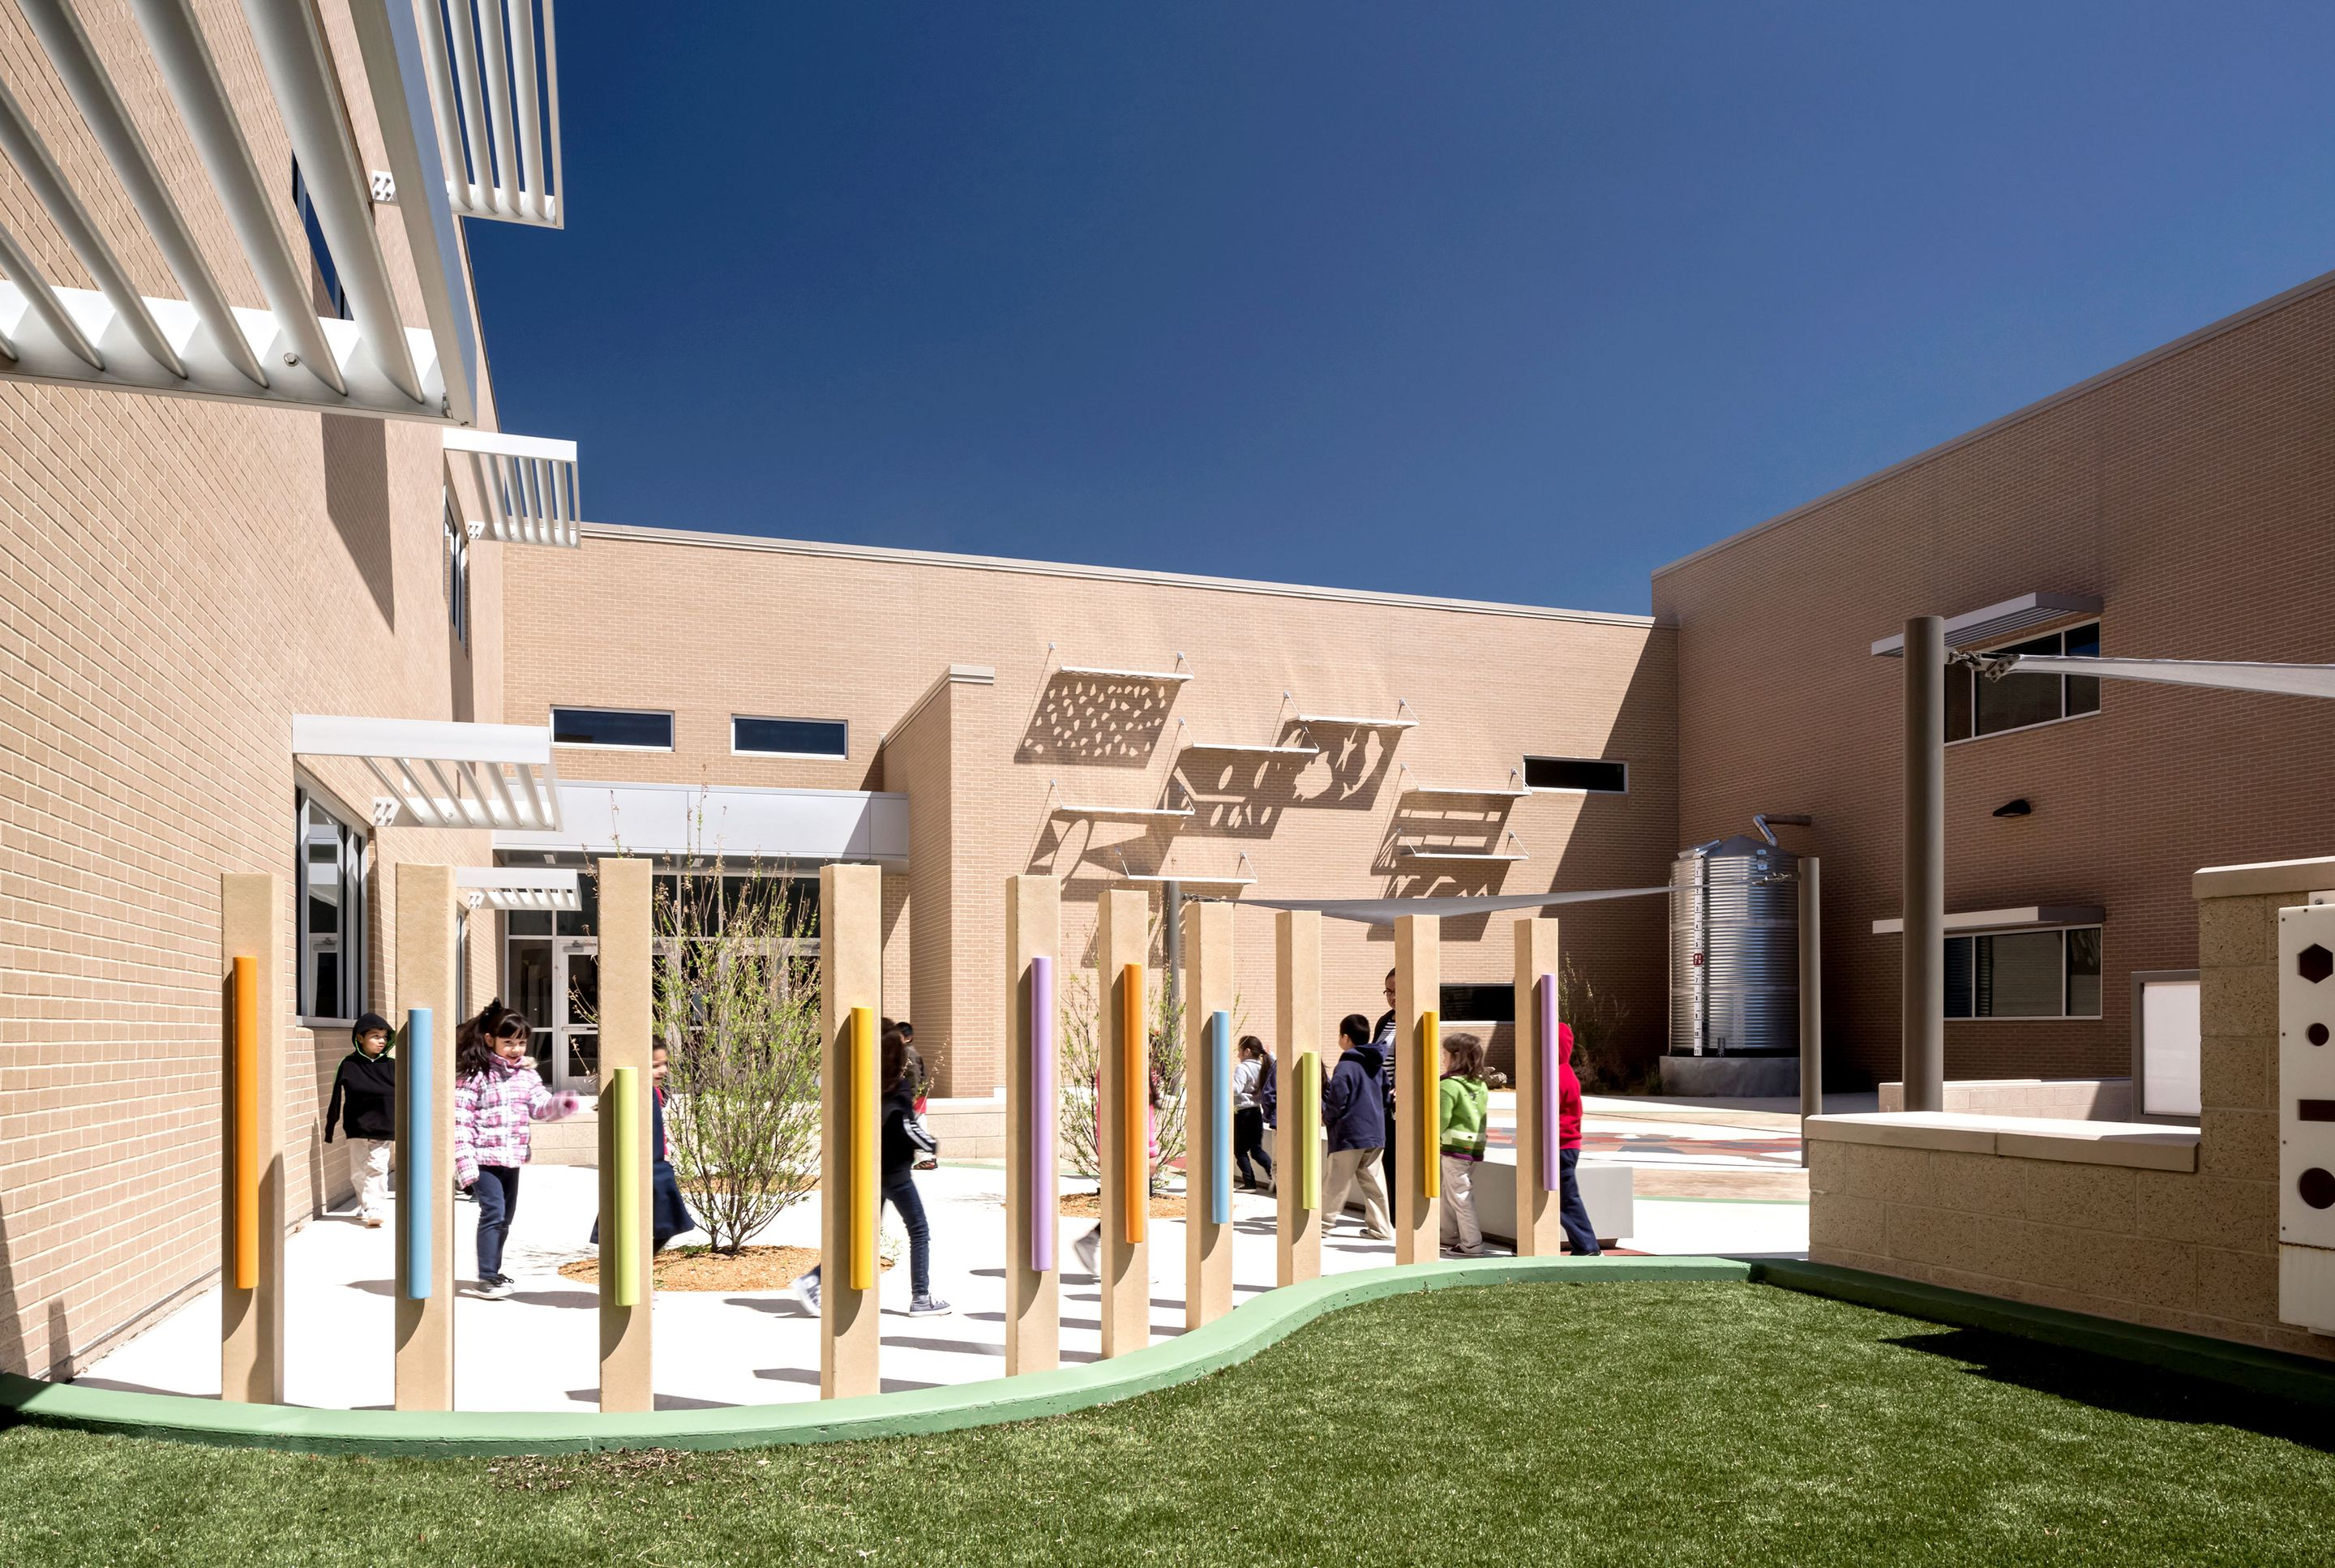 Daugherty Elementary School has a variety of outdoor learning zones connected to Texas standards. The shadow wall in the courtyard teaches students about the earth's rotation.